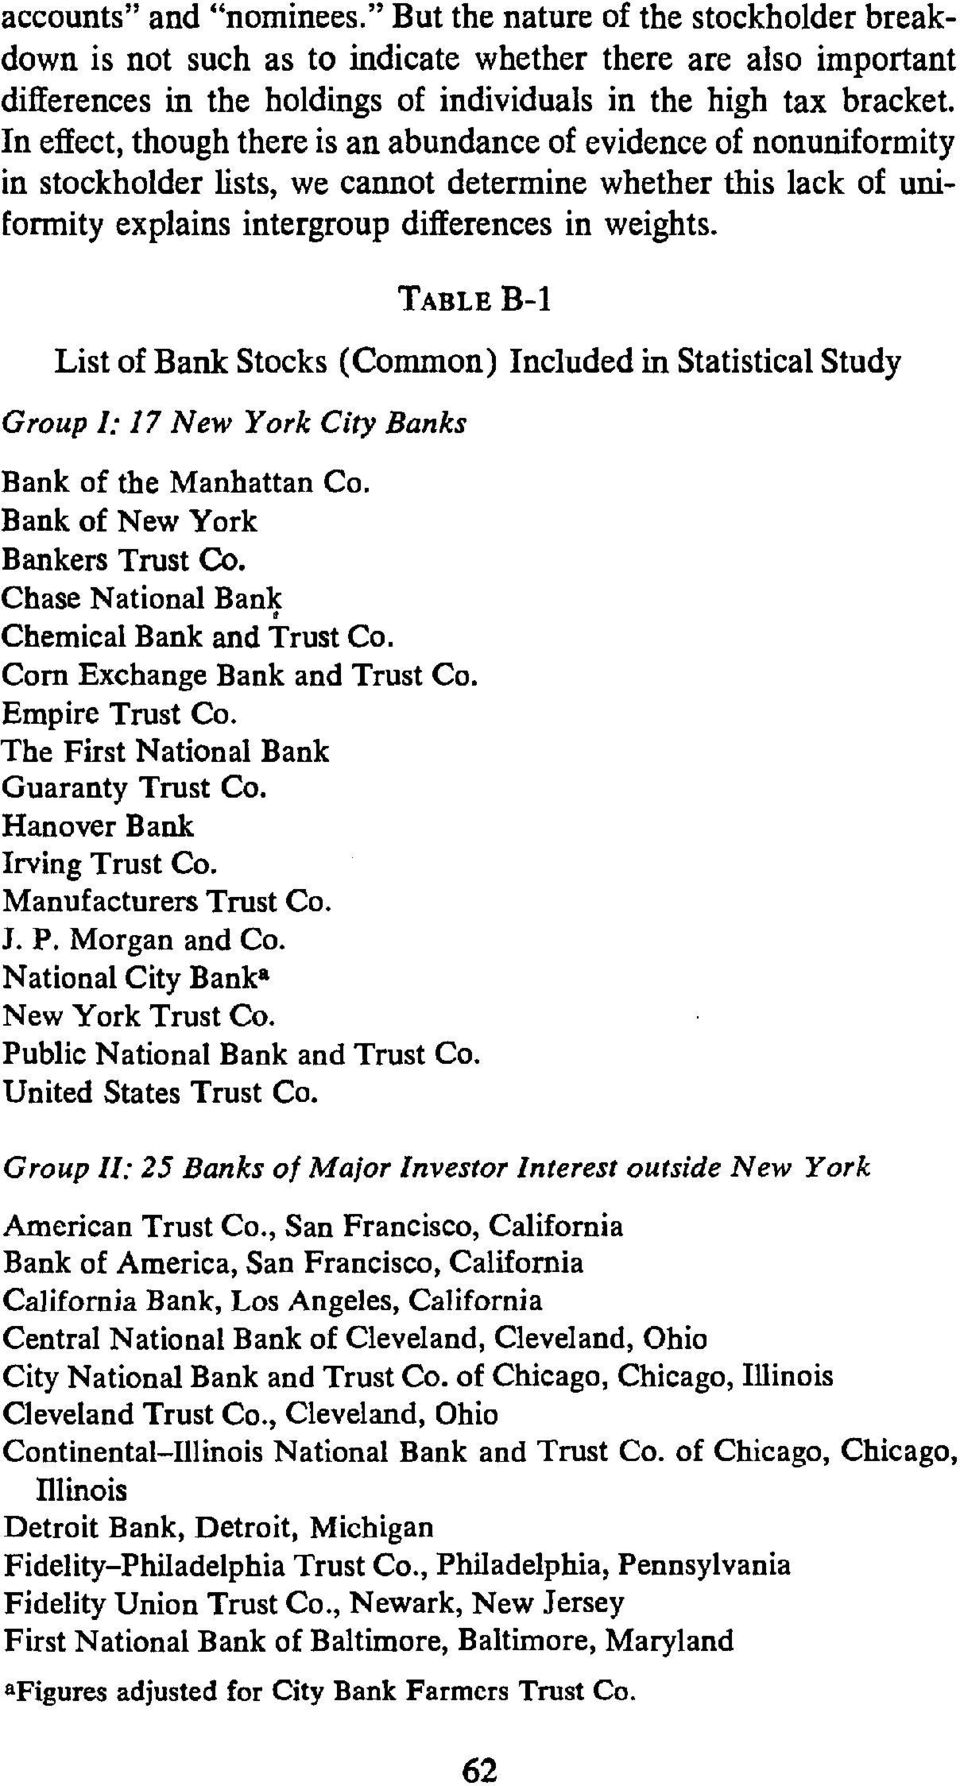 TABLE B-i List of Bank Stocks (Common) Included in Statistical Study Group 1: 17 New York City Banks Bank of the Manhattan Co. Bank of New York Bankers Trust Co.